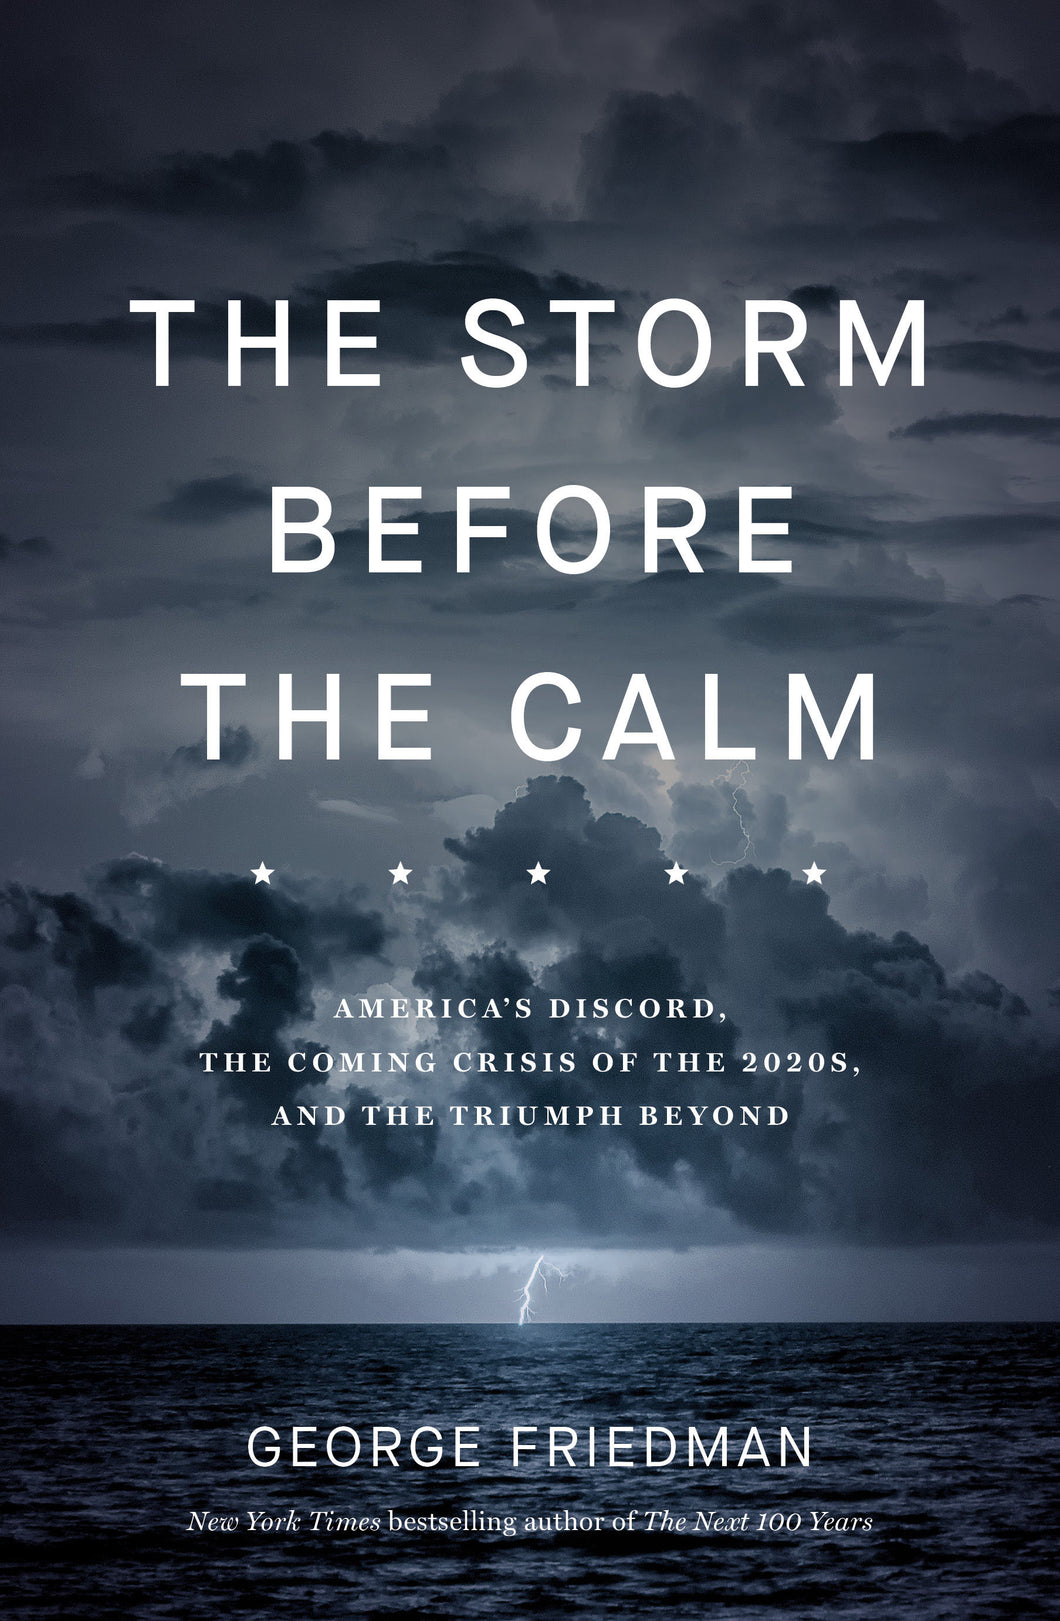 The Storm Before the Calm by George Friedman